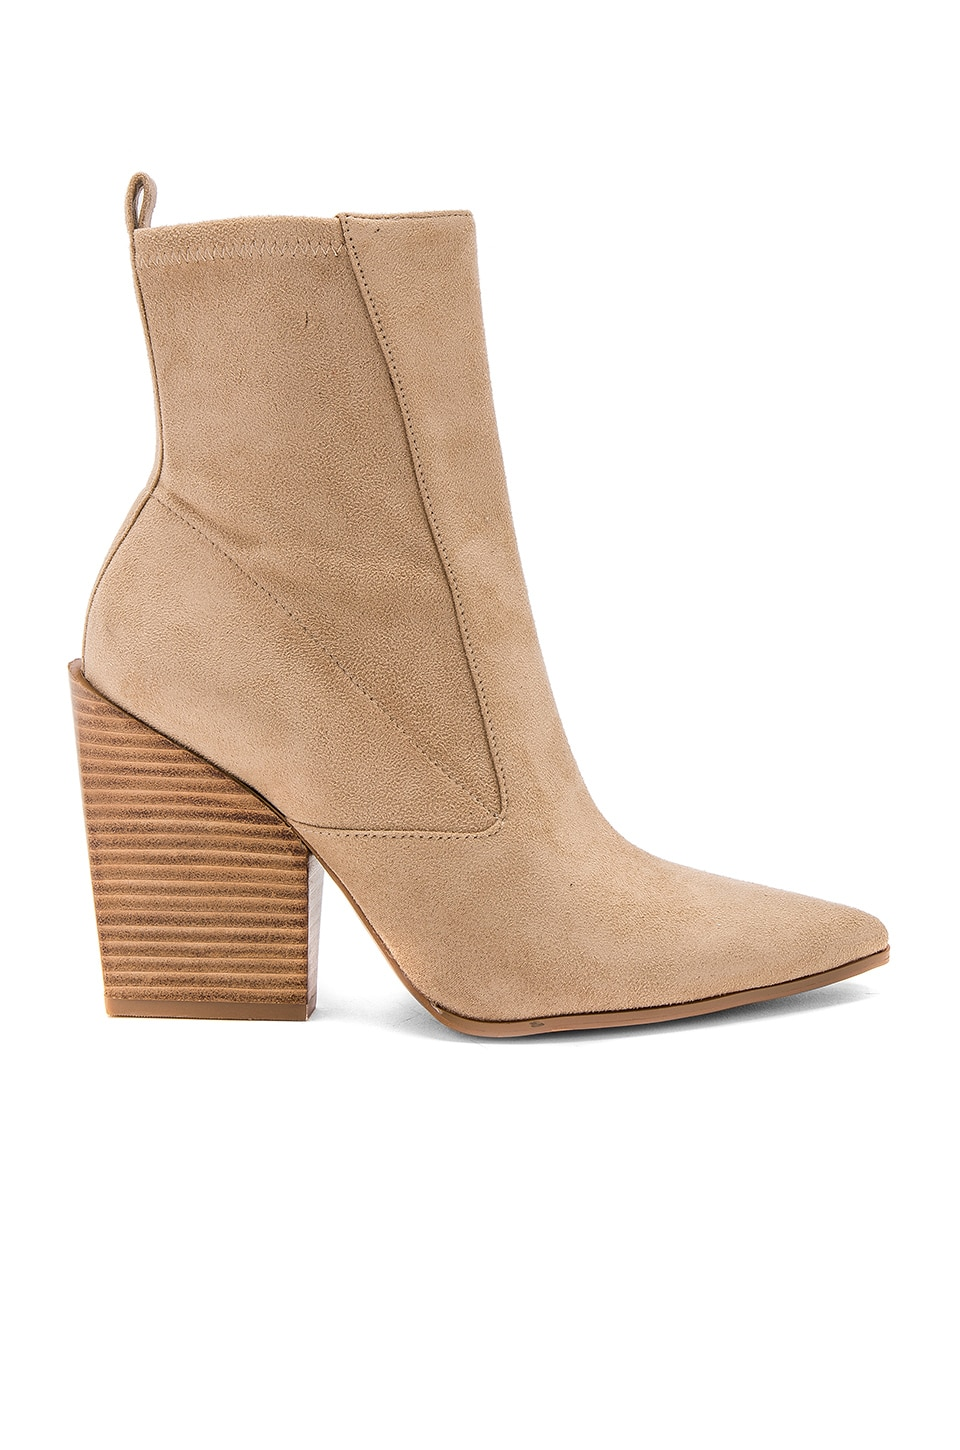 KENDALL + KYLIE Fallyn Bootie in New Camel